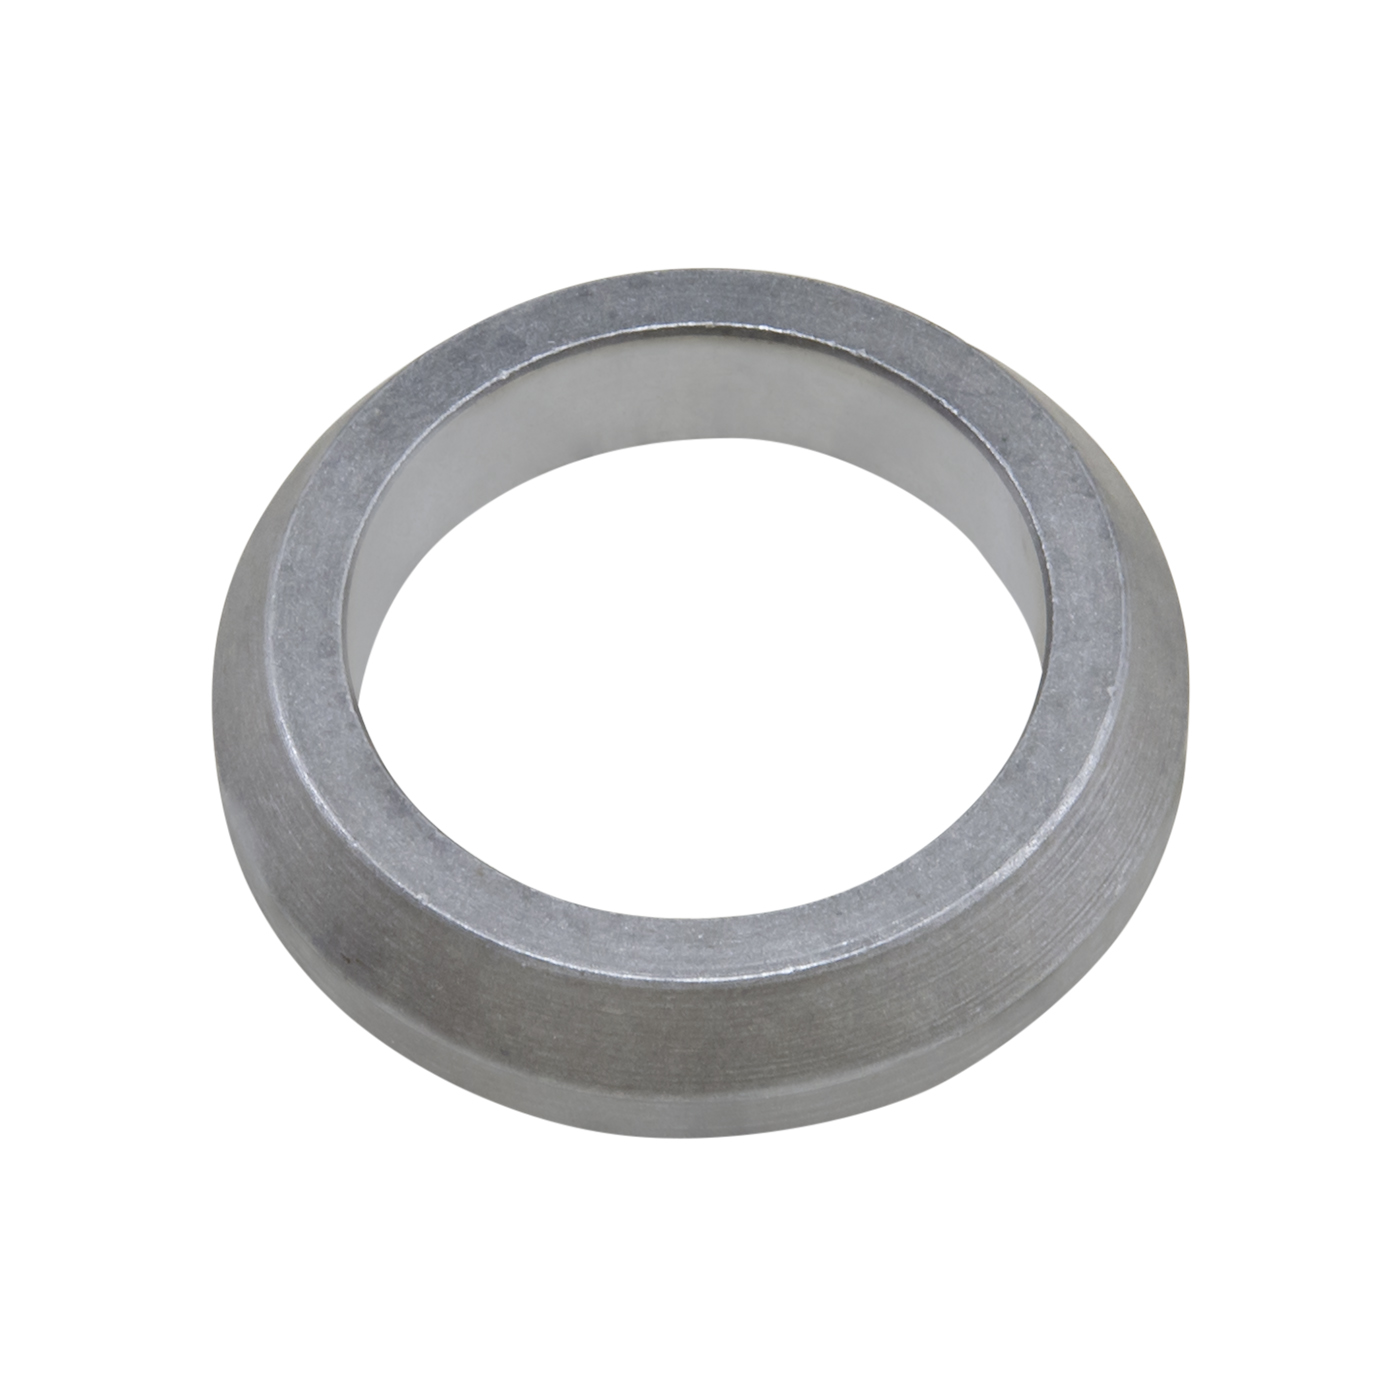 YSPRET-009 - Axle Bearing Retainer for 565904 Bearing